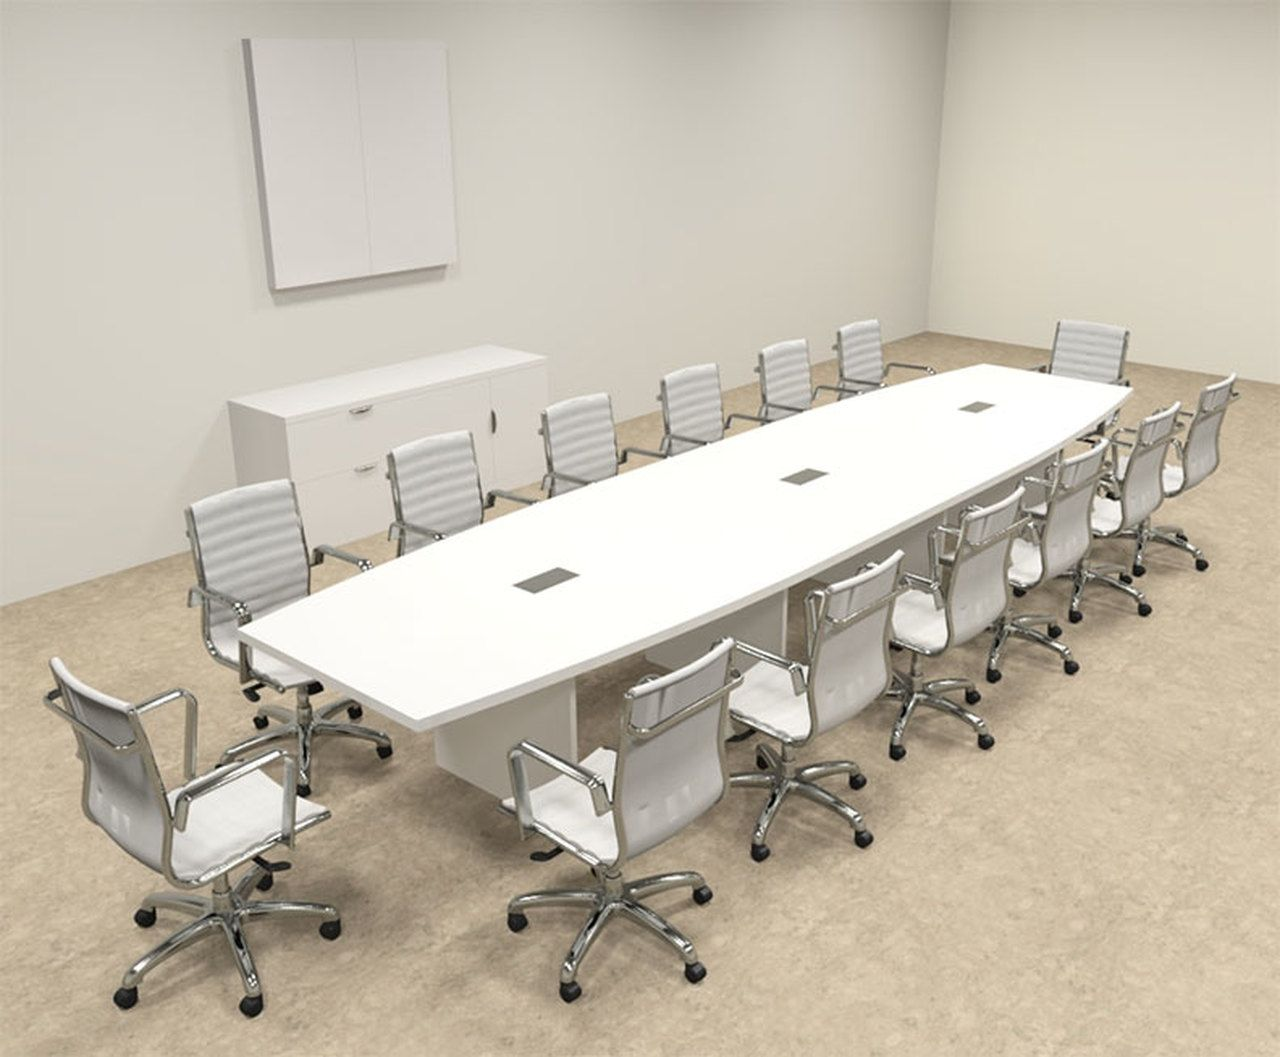 Modern Boat Shaped 16 Feet Conference Table Of Con C125 In 2020 Conference Table Office Table Design Table